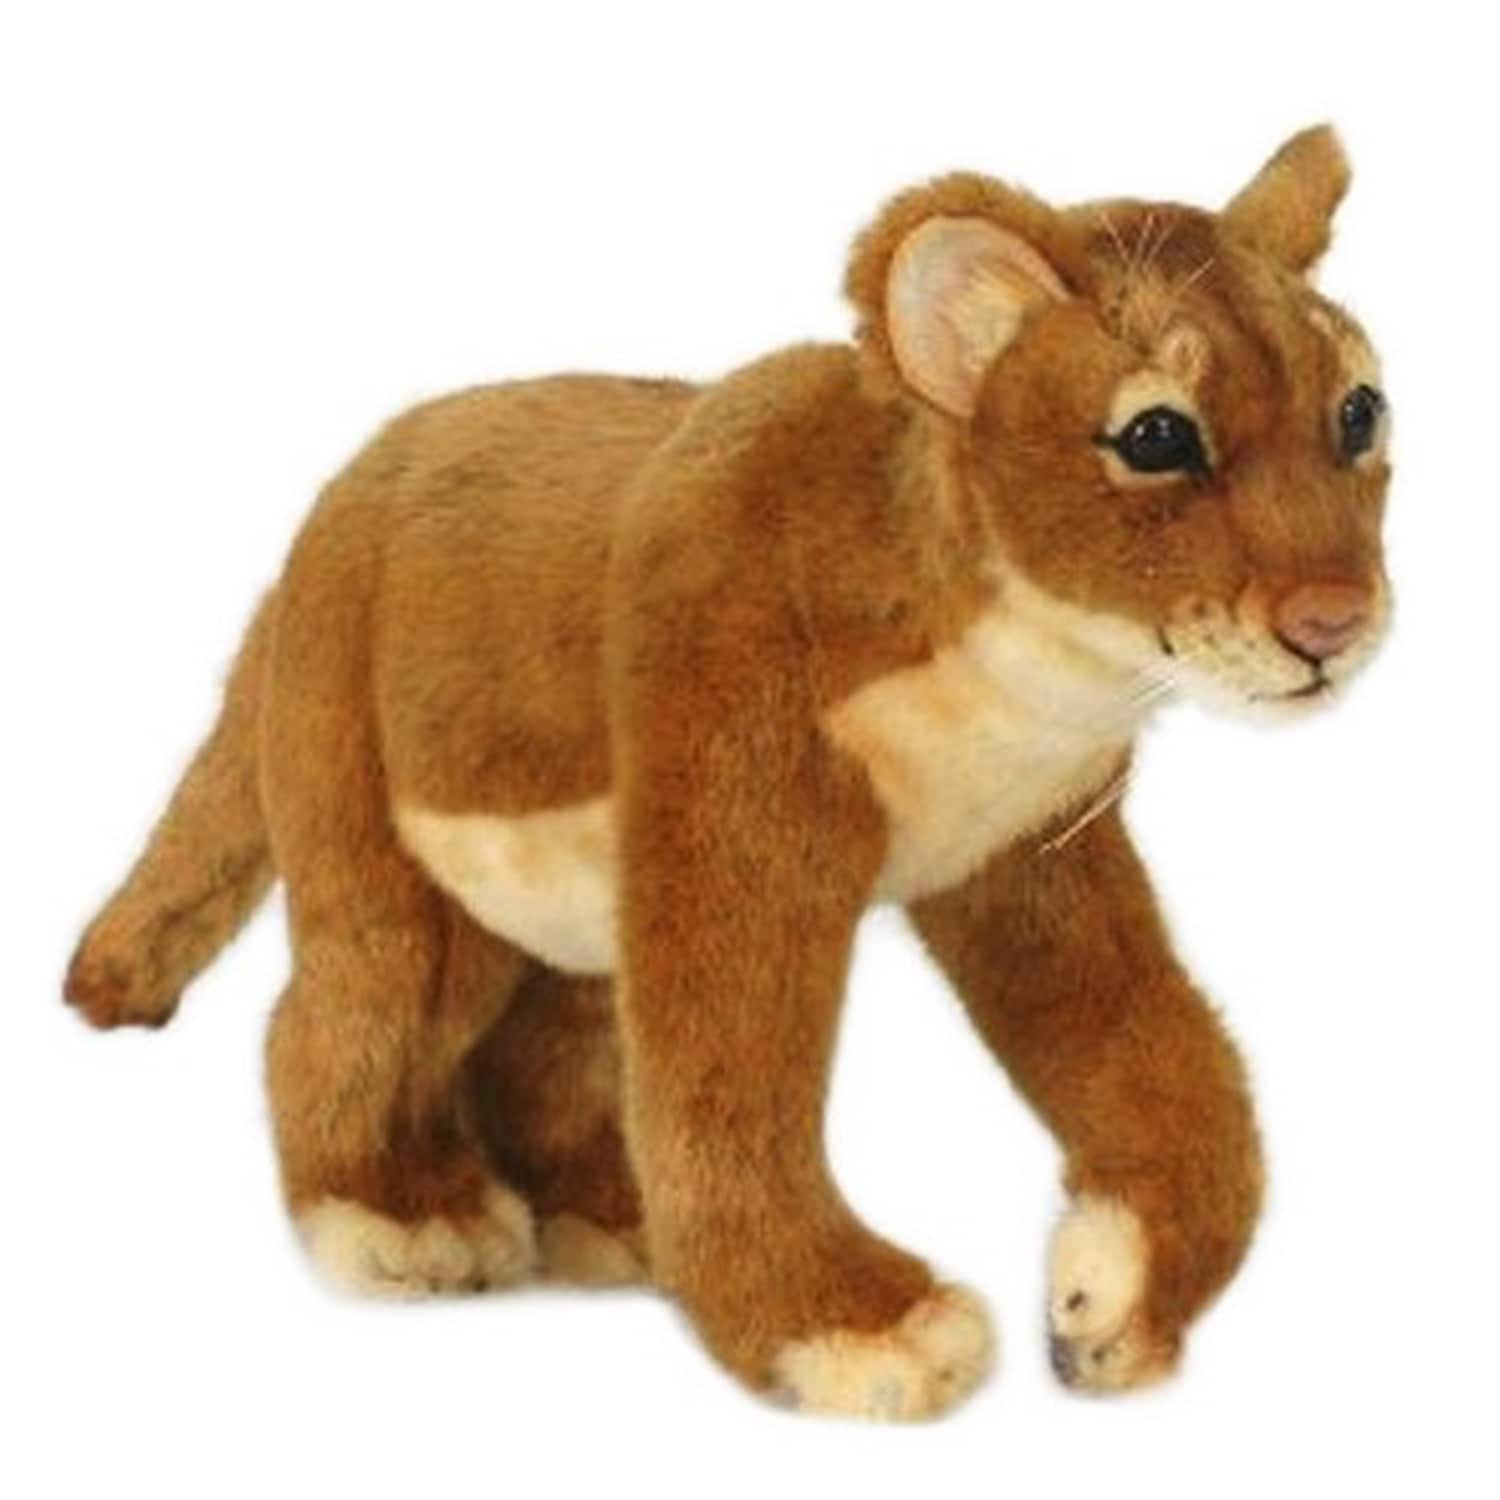 Hansa Standing Lion Cub Plush Toy by Overstock